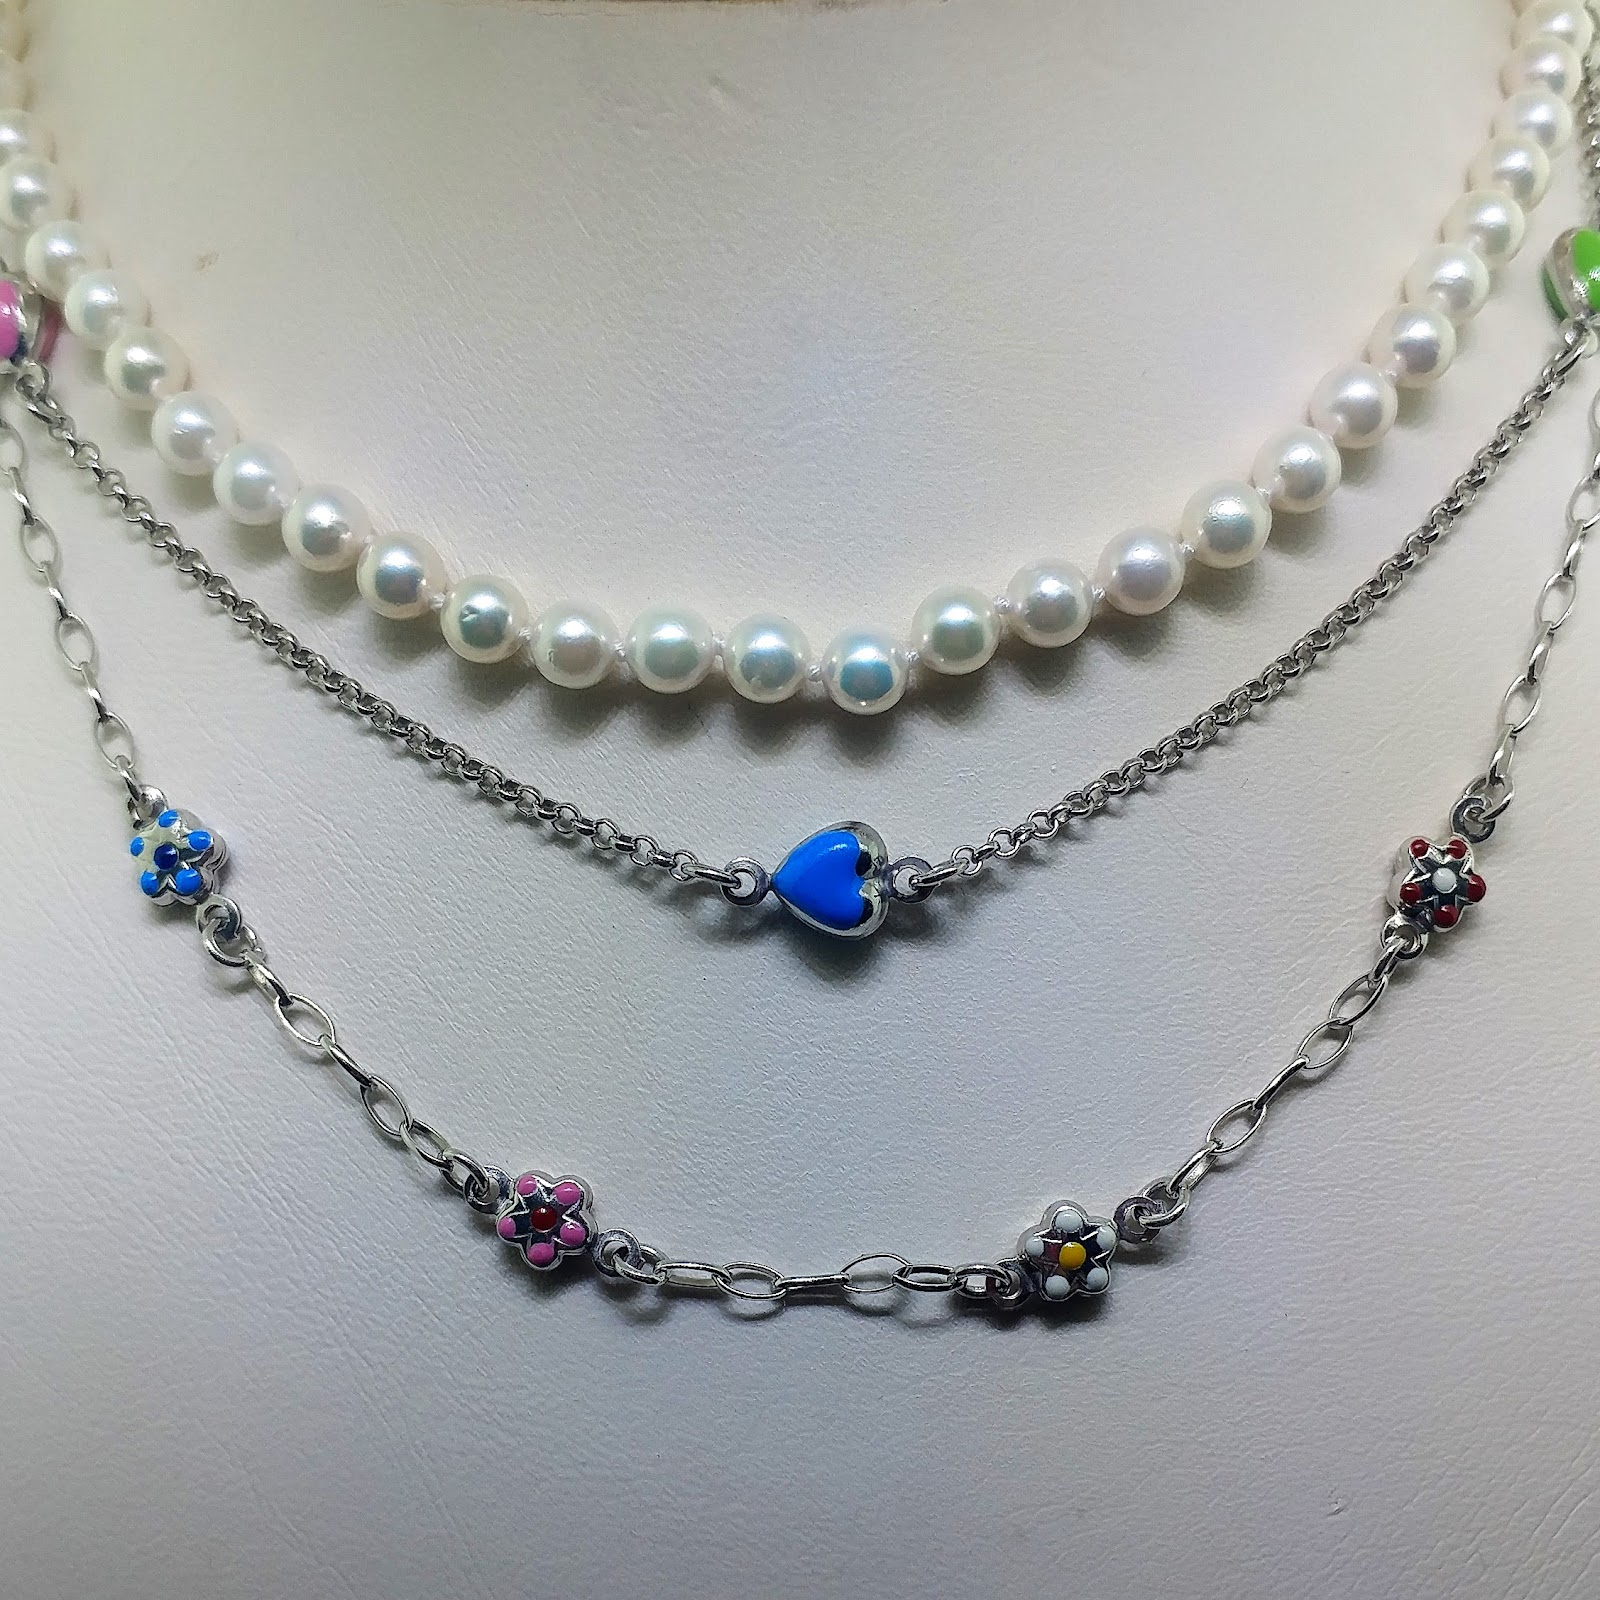 126ee930b When purchasing your child's first necklace, it is important to talk to  them about the risks of playing with necklaces. Also, you should always  check and ...